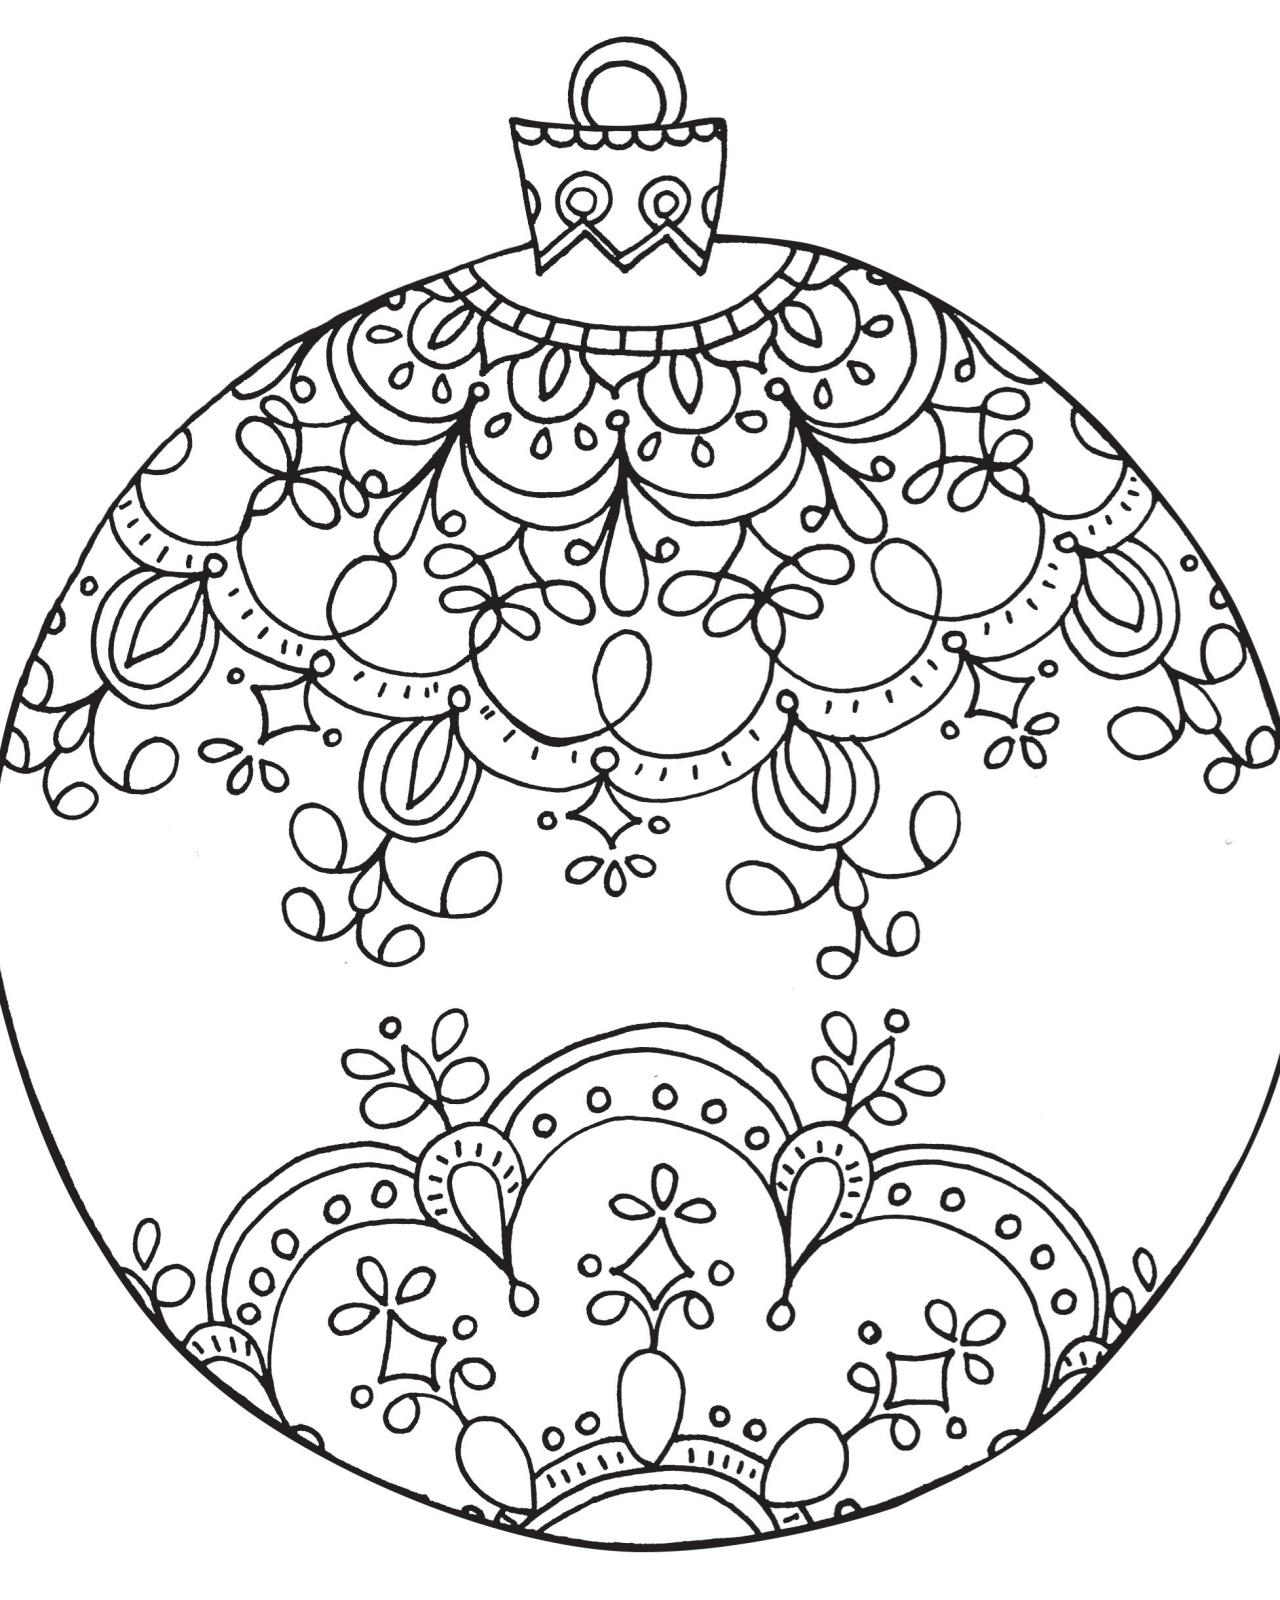 adult coloring pages printable christmas - photo#35